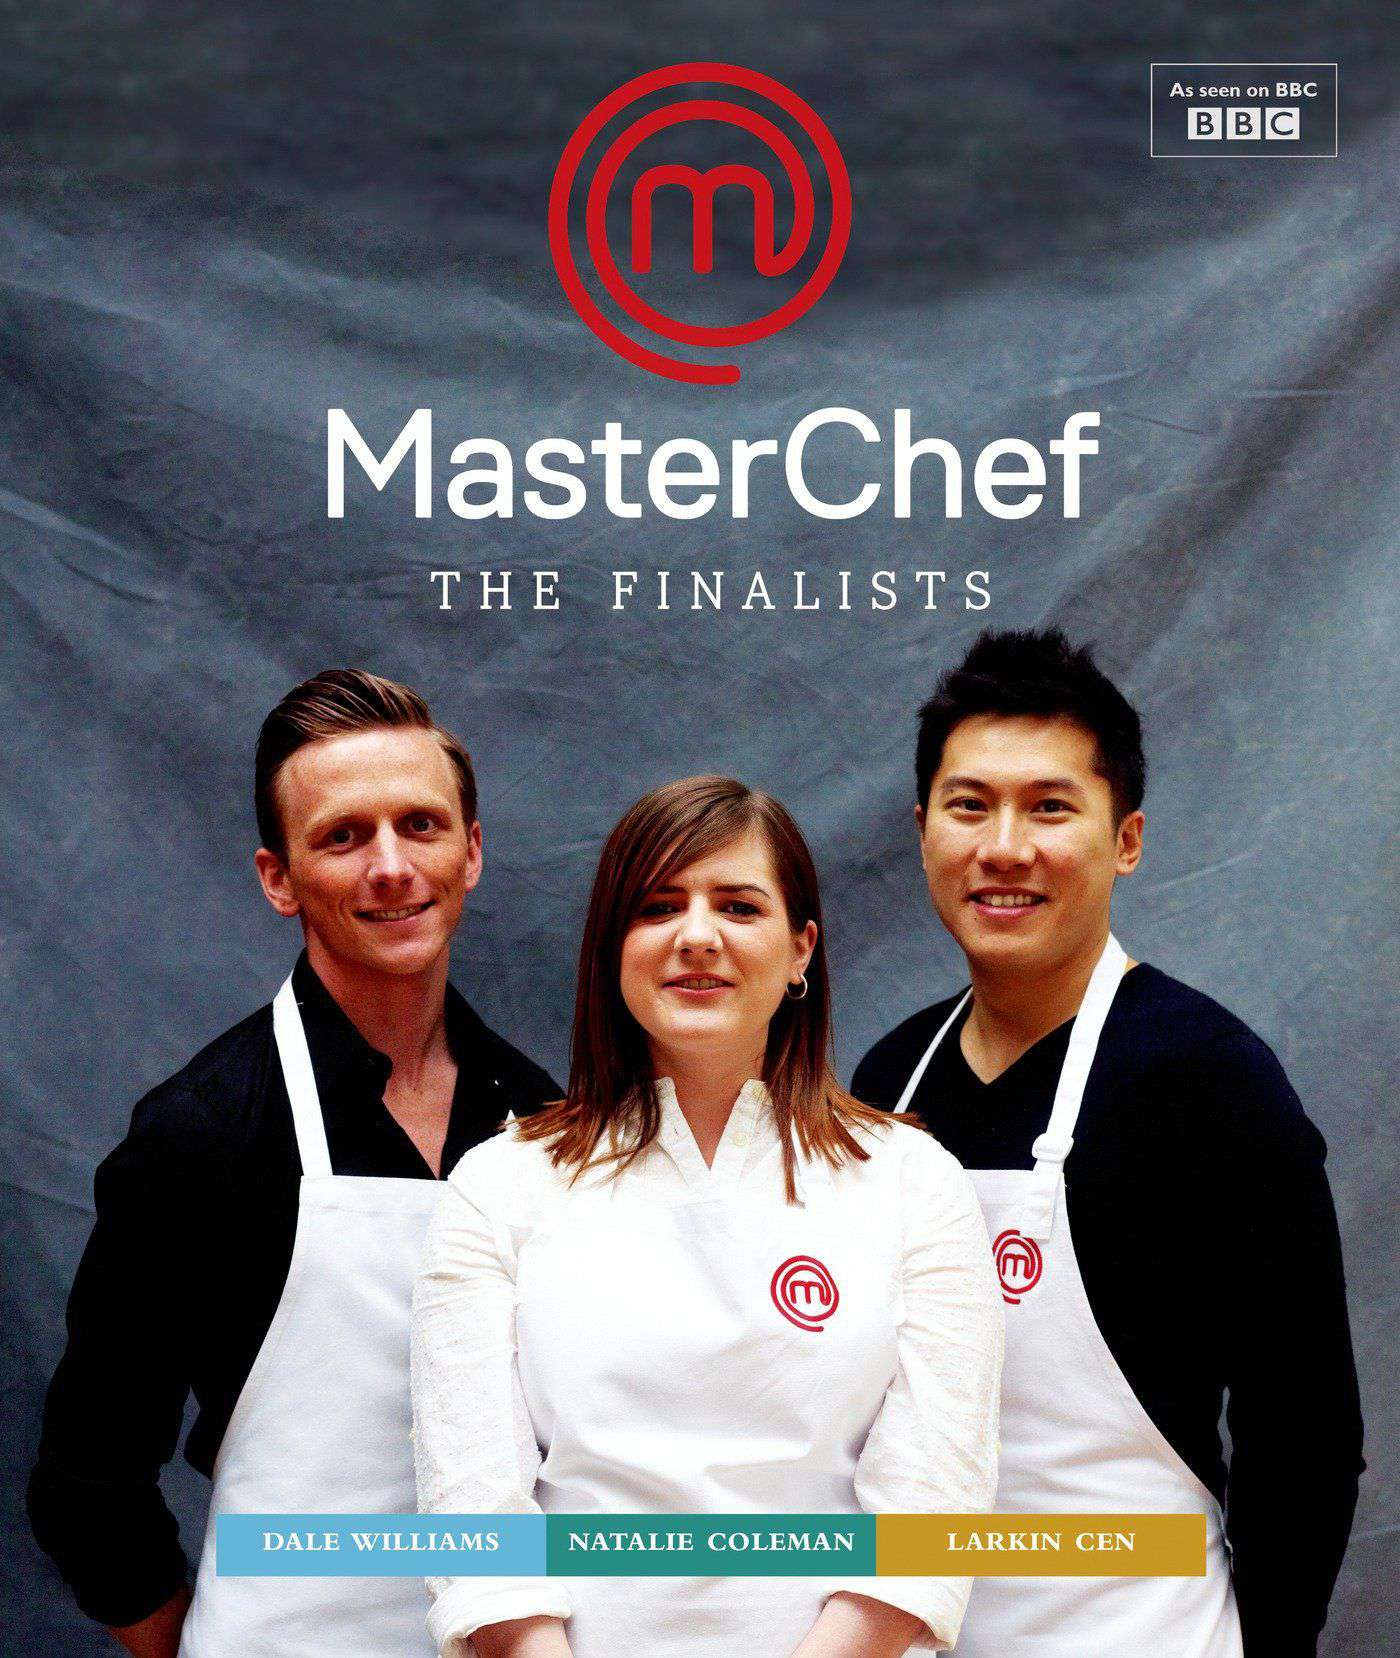 Master Chef the Finalists